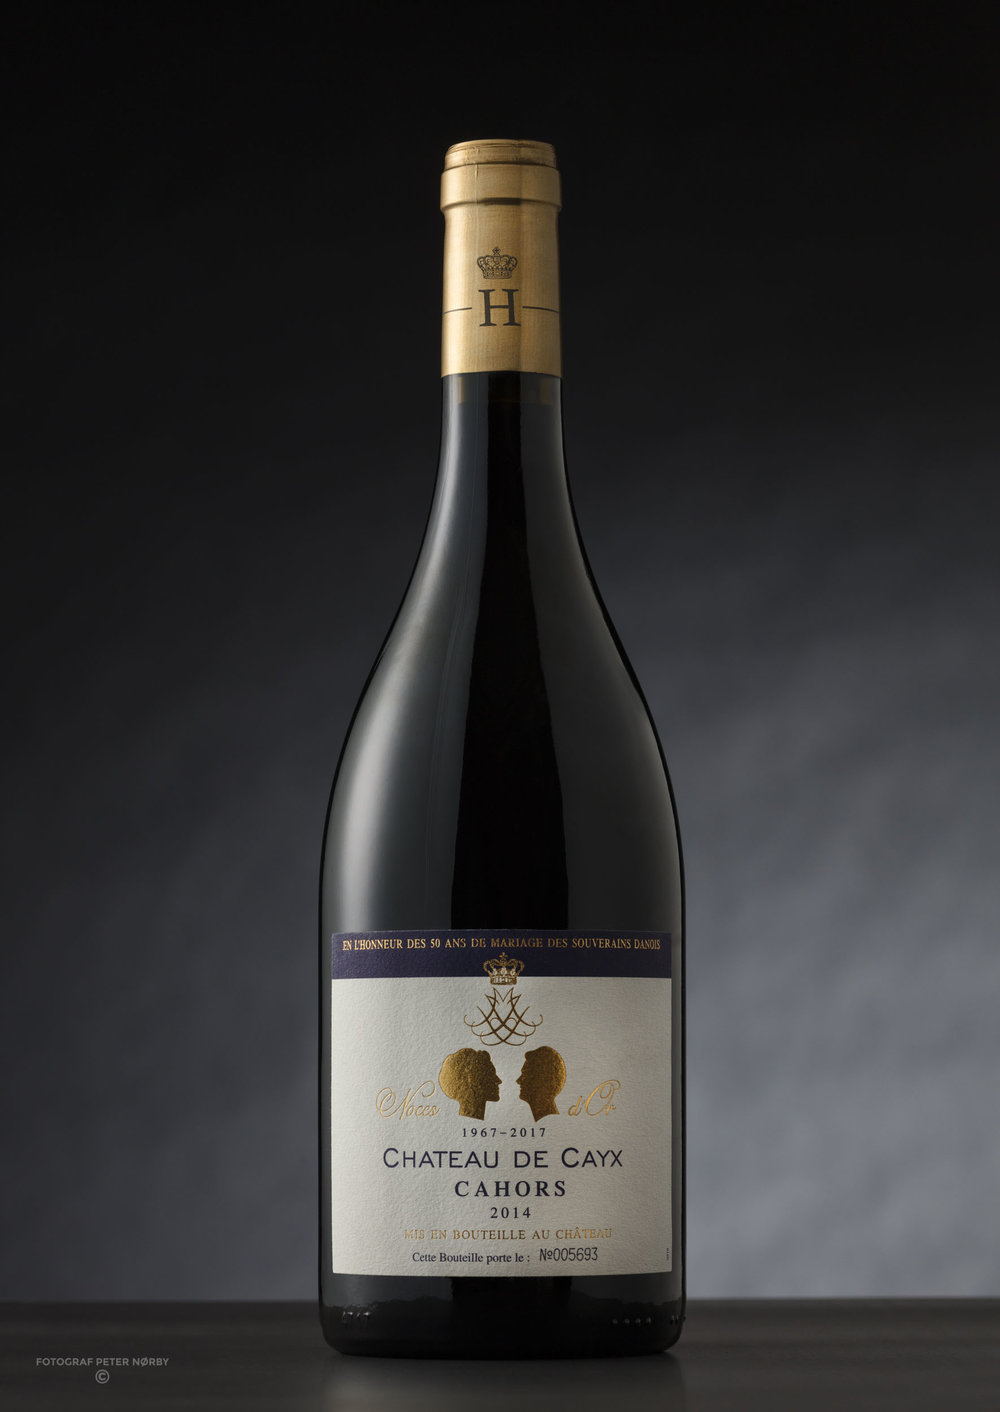 Chateau De Cayx served at the 50th wedding anniversary in 2017